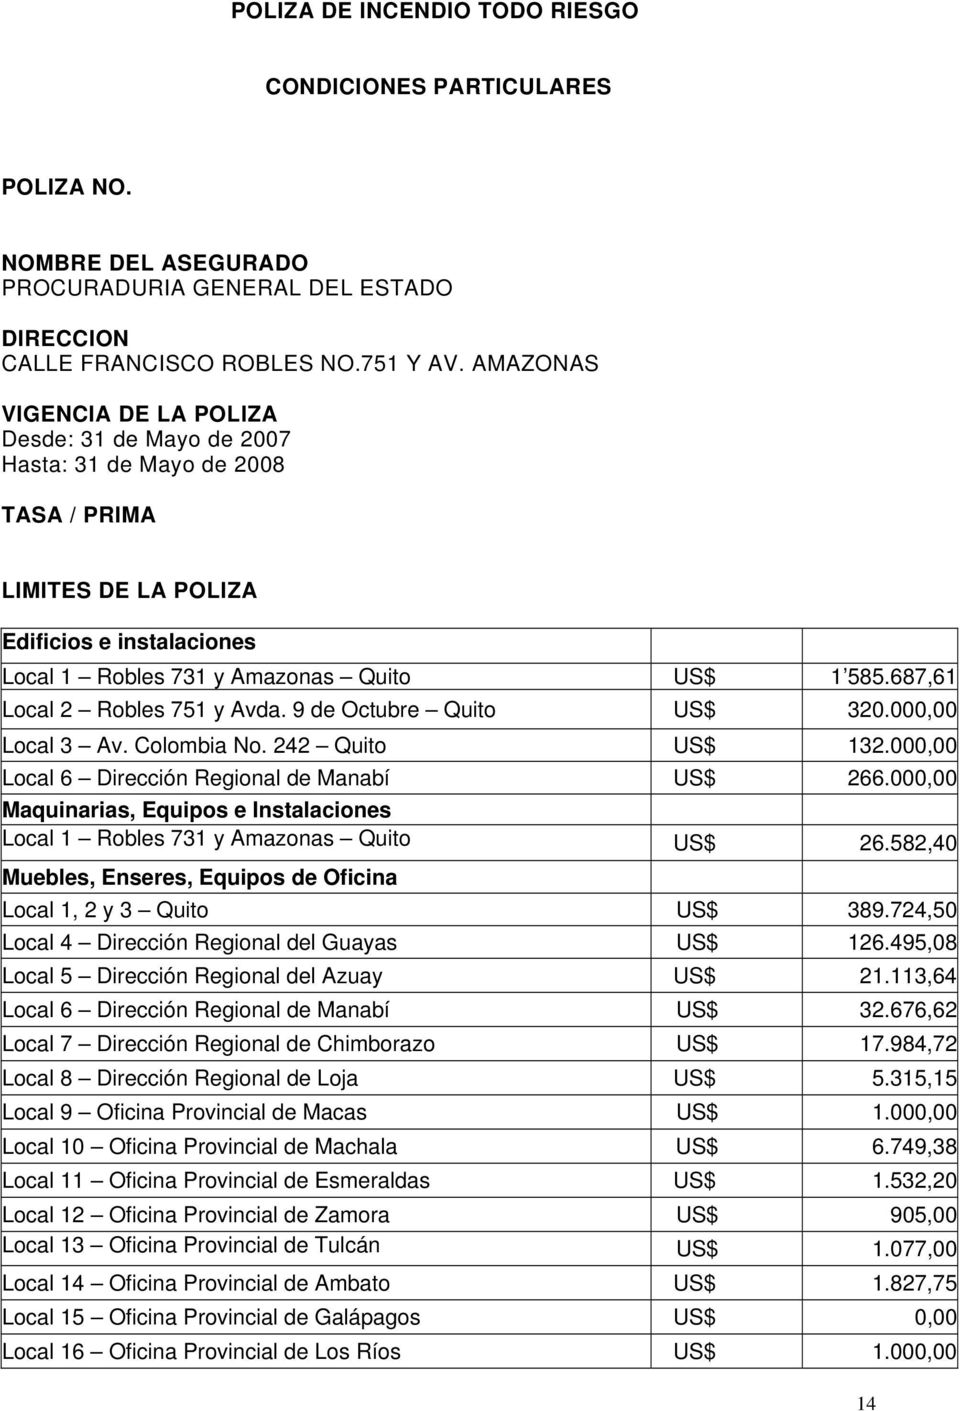 687,61 Local 2 Robles 751 y Avda. 9 de Octubre Quito US$ 320.000,00 Local 3 Av. Colombia No. 242 Quito US$ 132.000,00 Local 6 Dirección Regional de Manabí US$ 266.